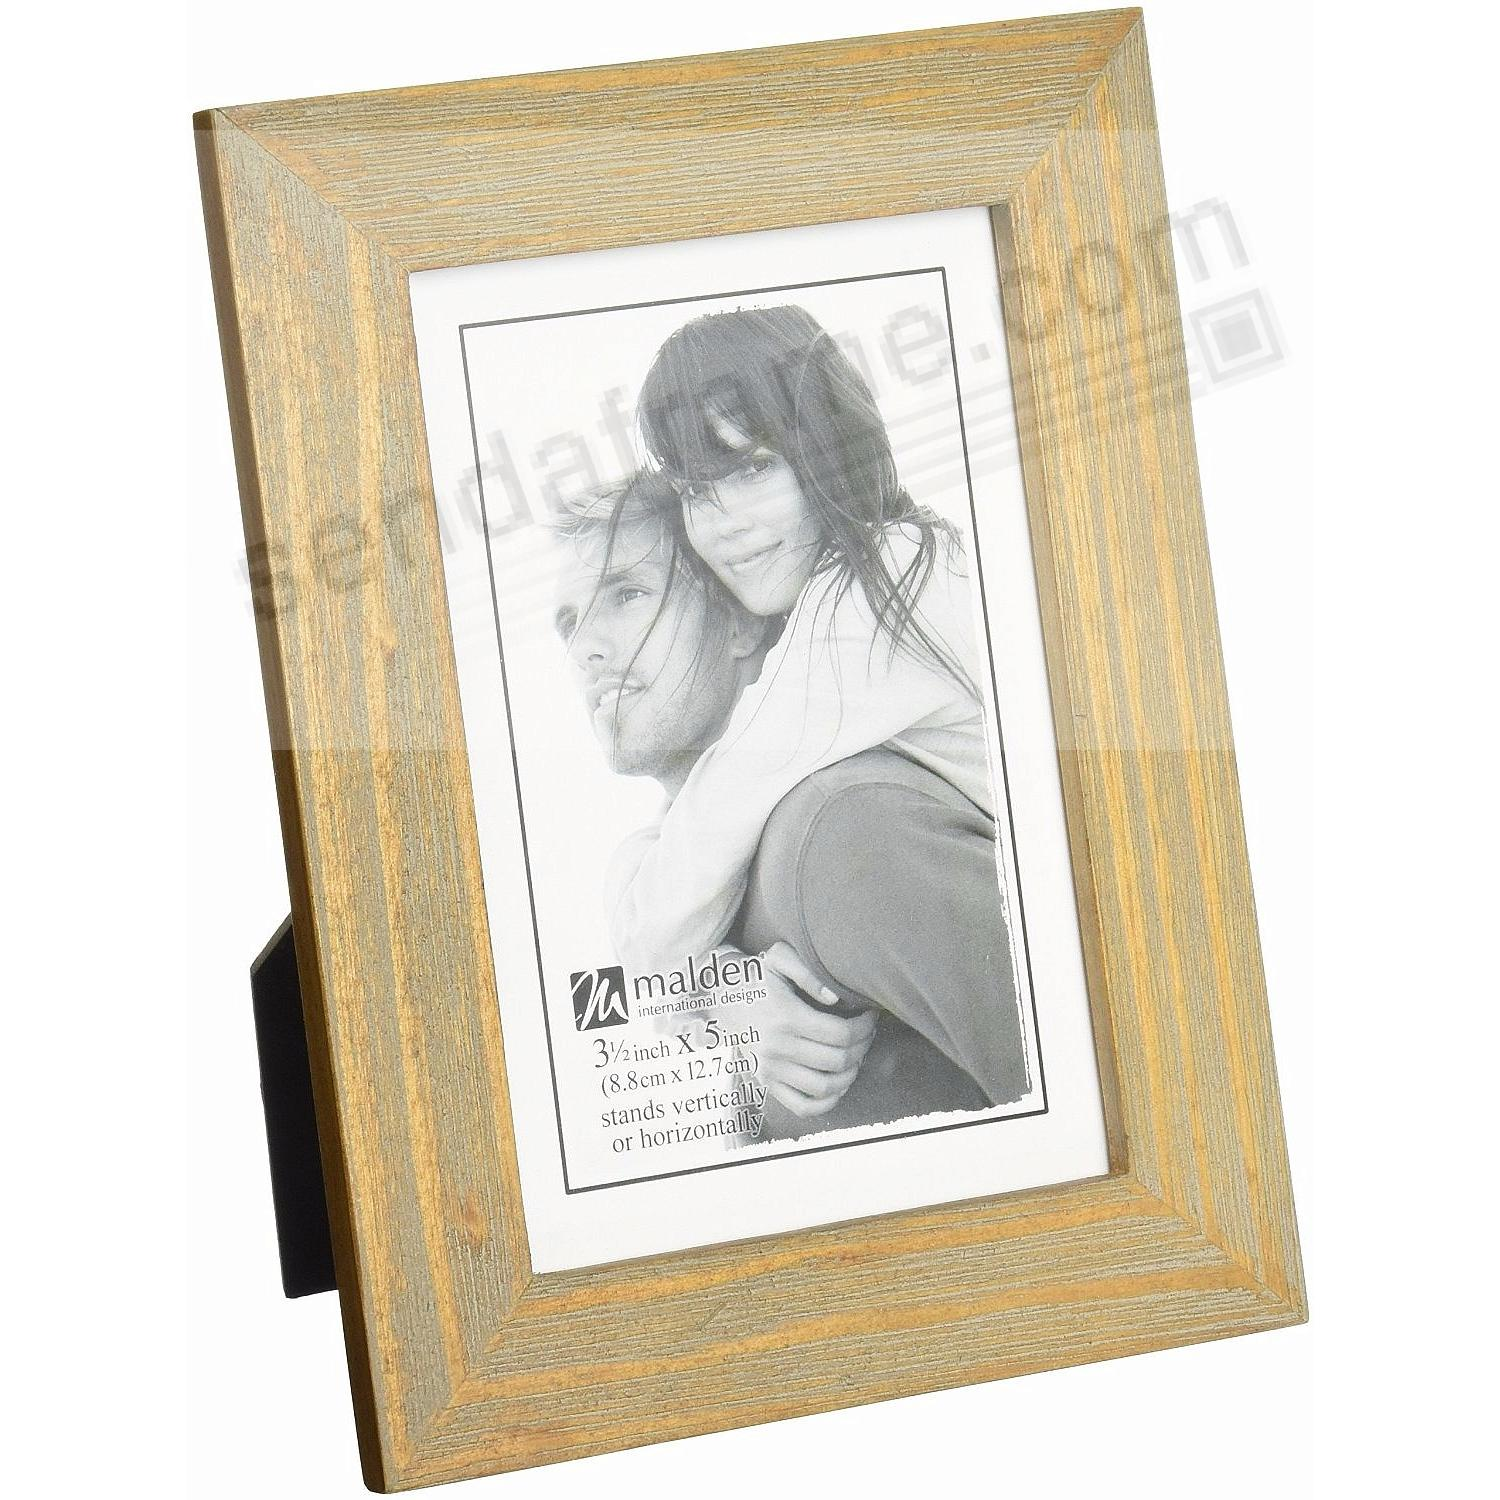 DRIFTWOOD LINEAR 3½x5 frame by Malden® - Picture Frames, Photo ...